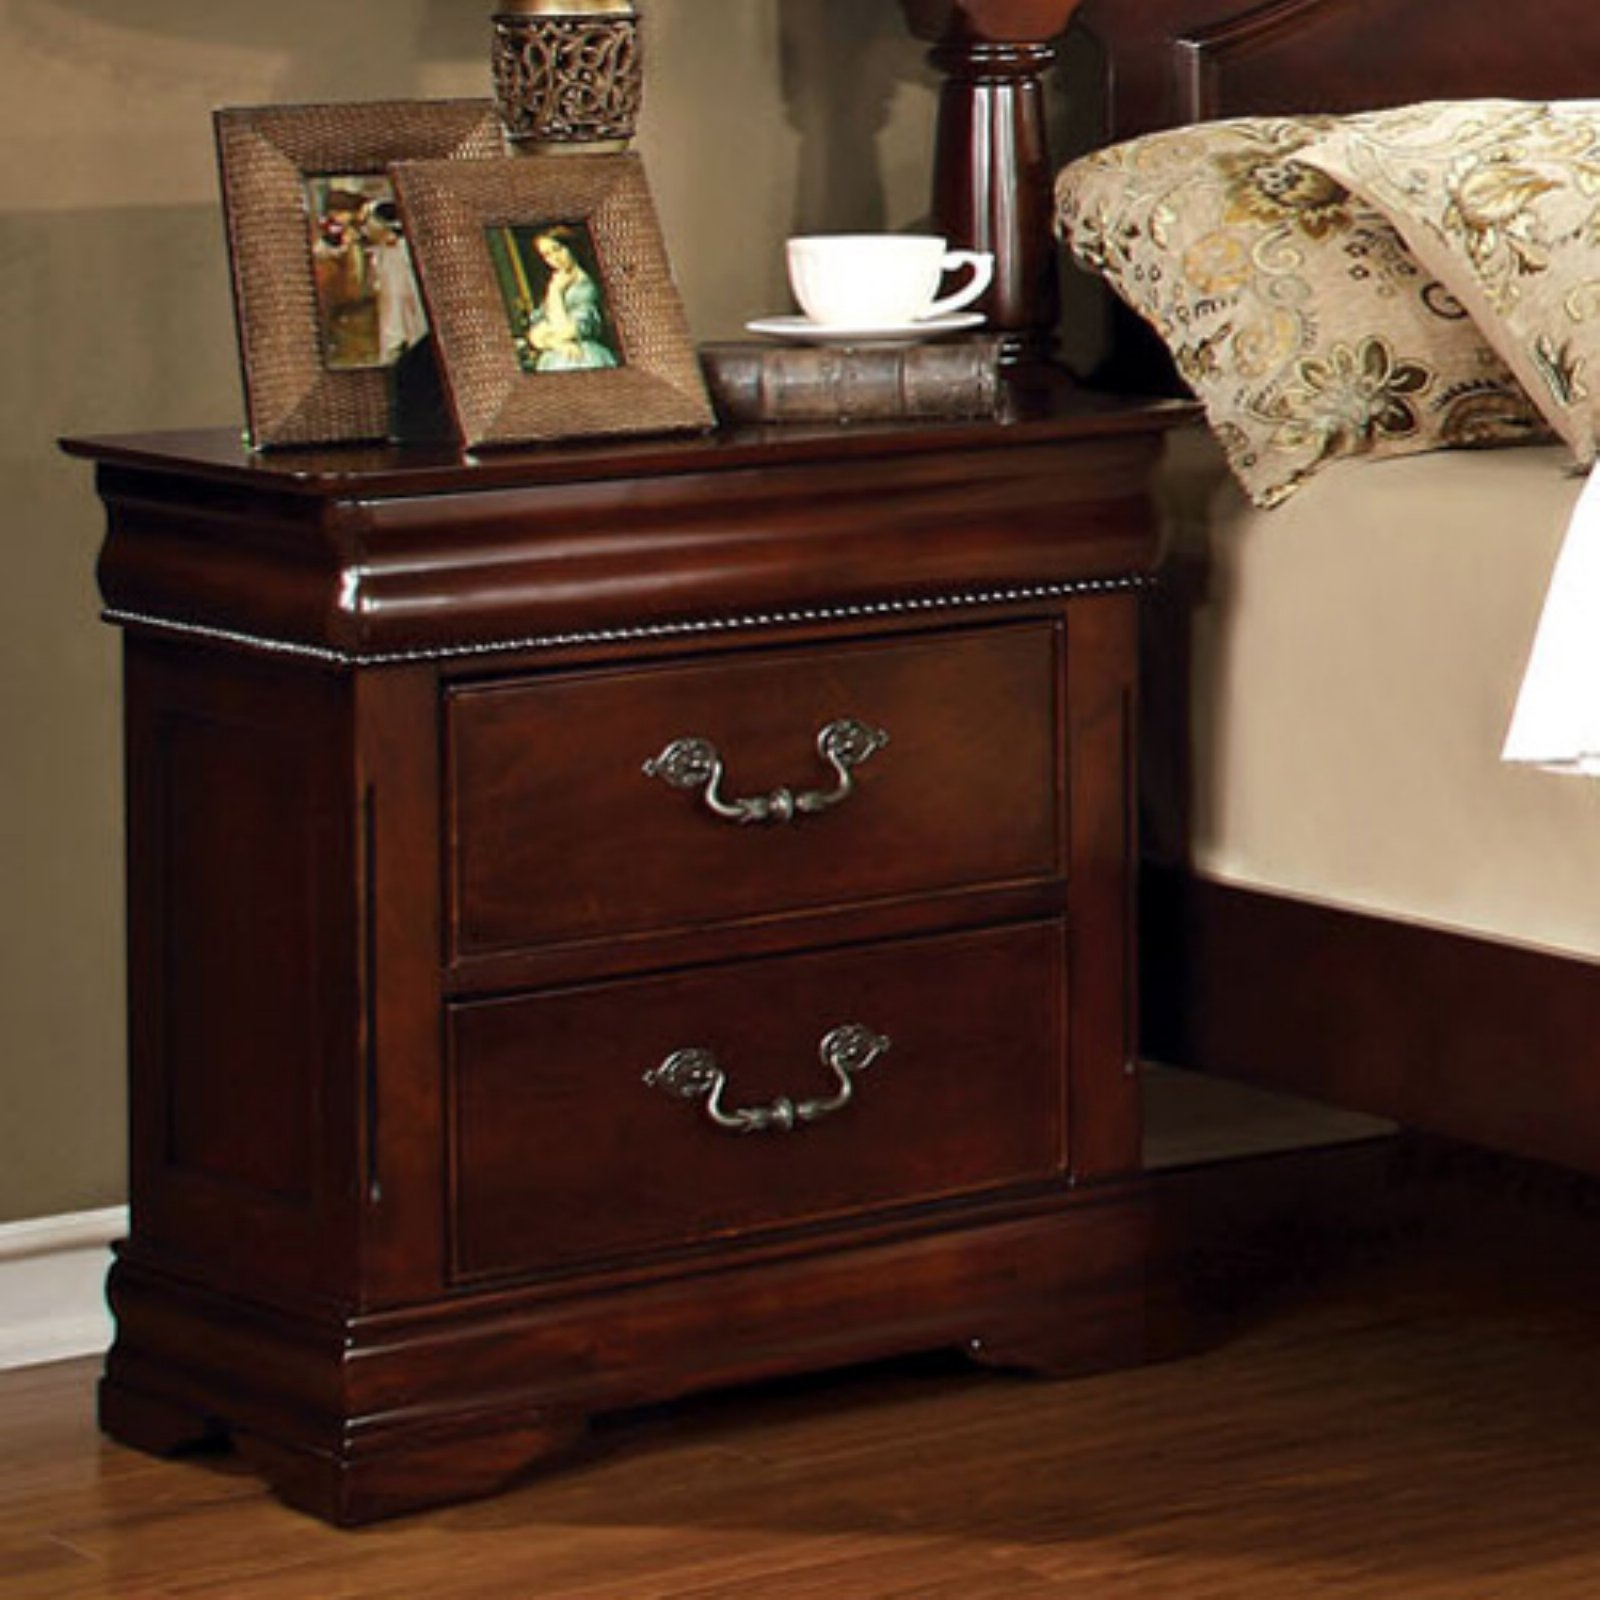 Furniture of America Grand Central 2 Drawer Nightstand - Cherry